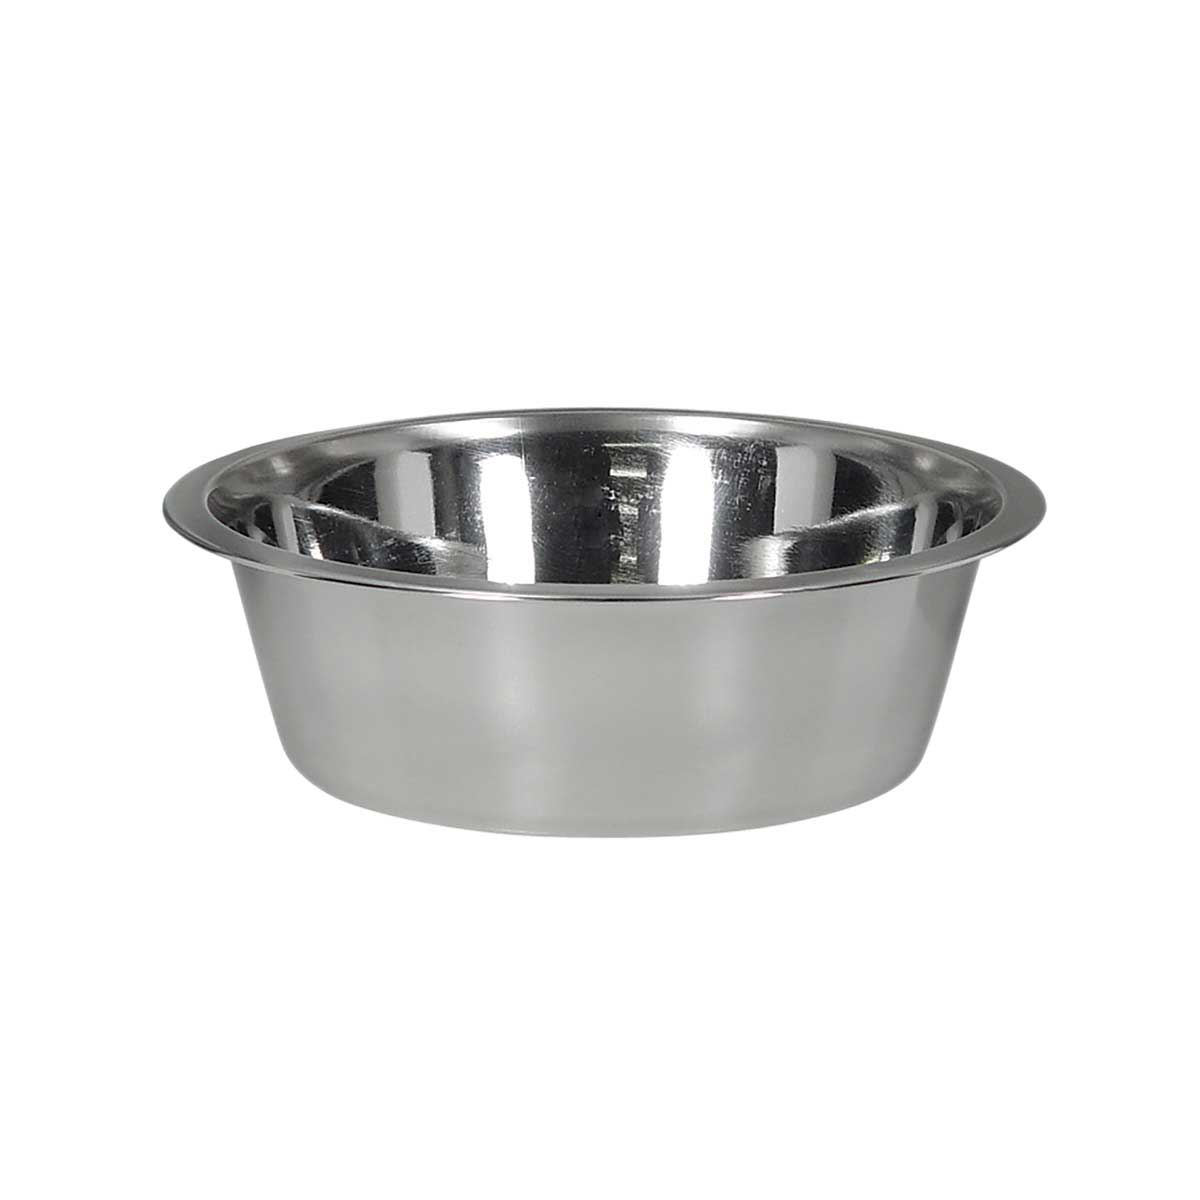 Indipets Stainless Steel Dish 3 Quart at Ryan's Pet Supplies